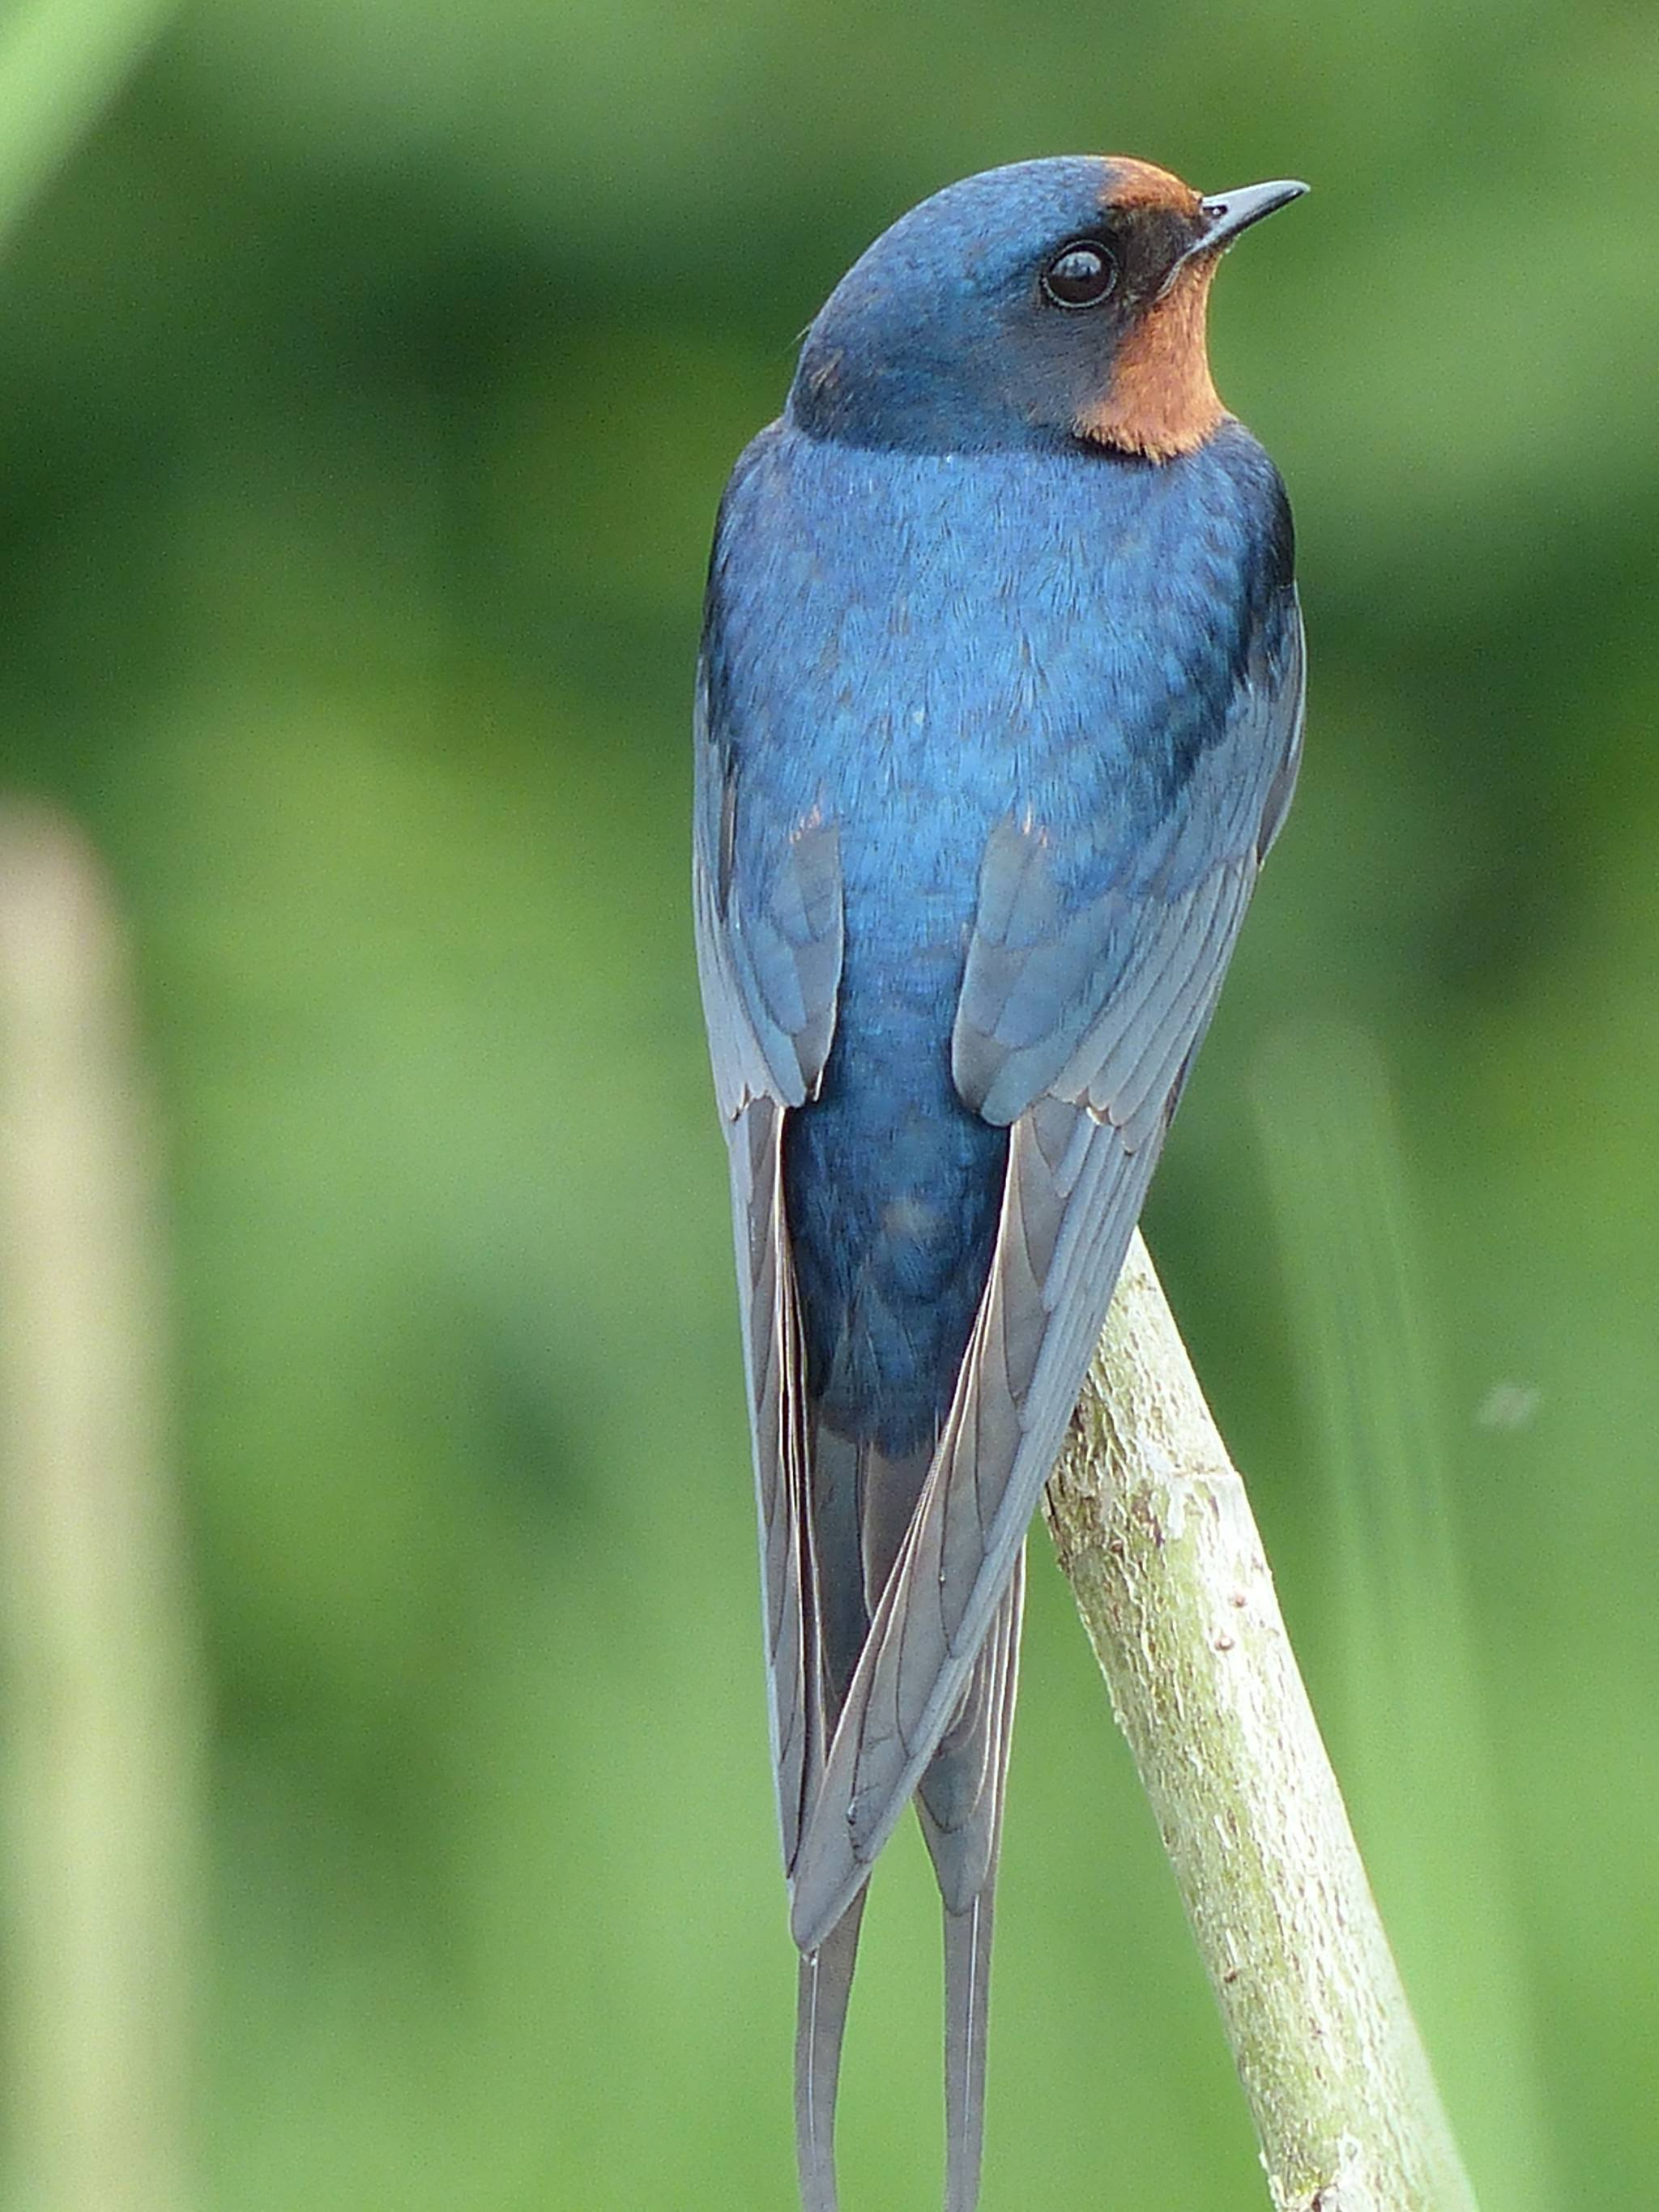 Barn swallows filt about Harrison once again, in smaller numbers